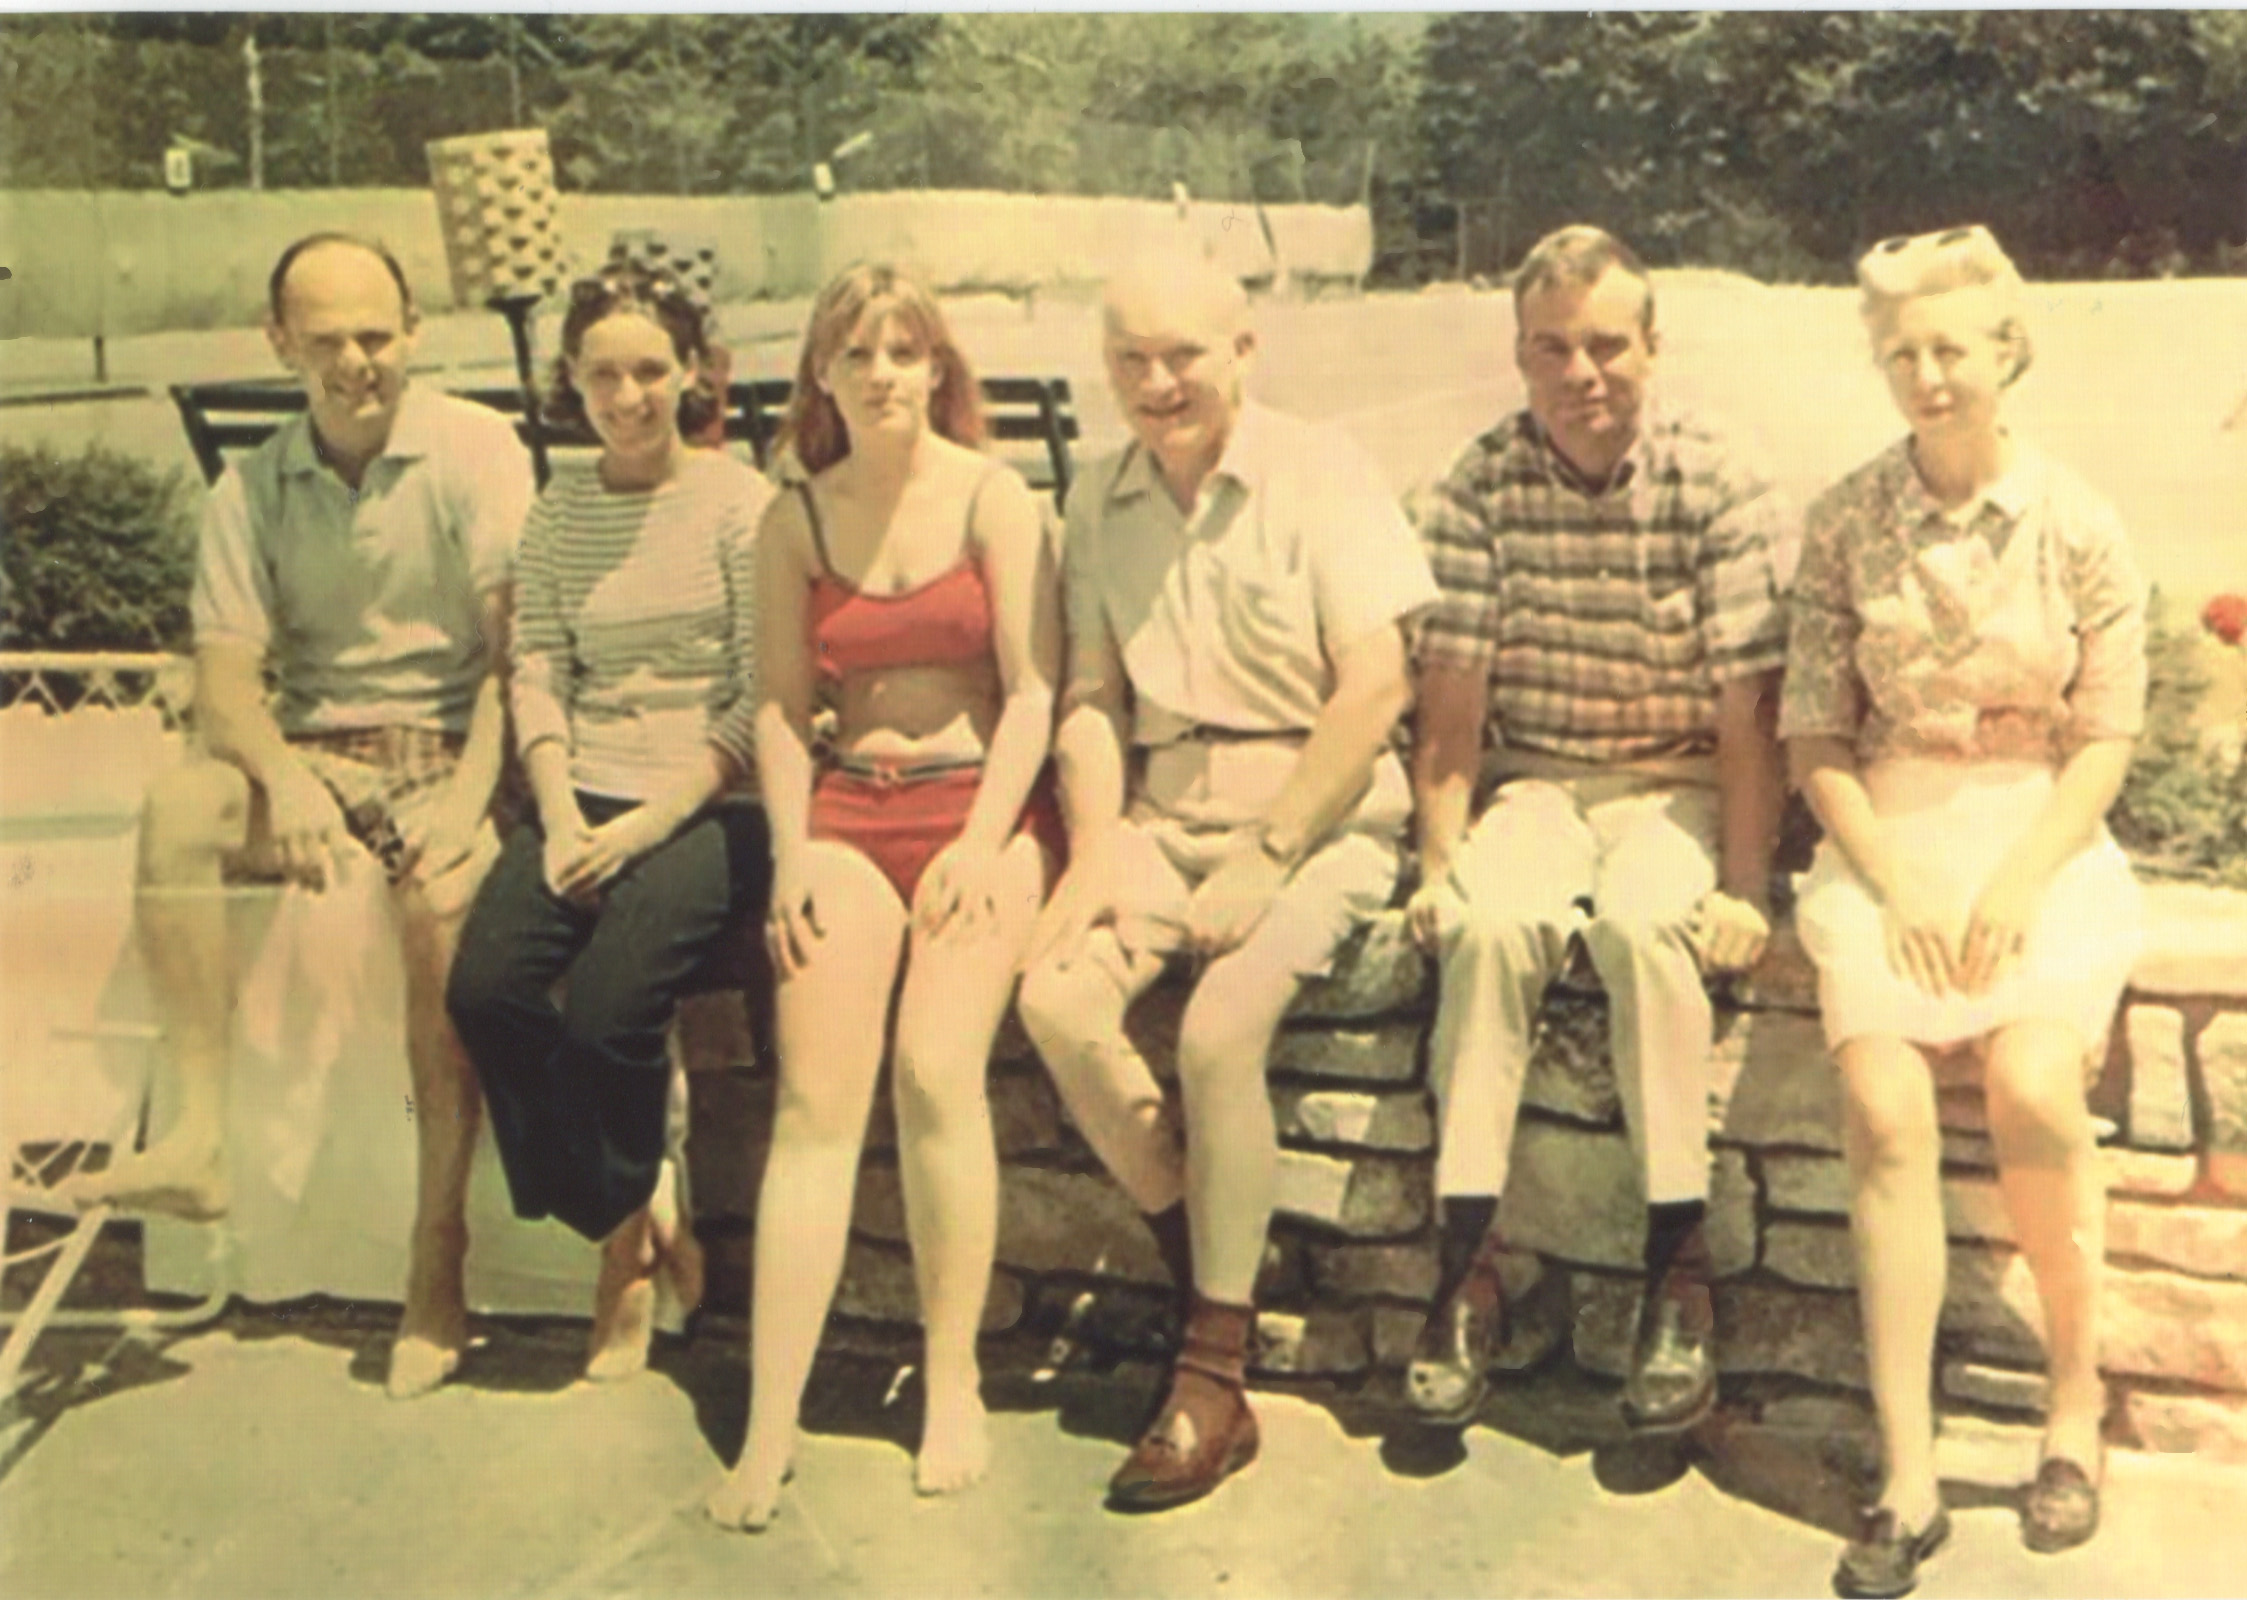 The Donovan family at Lake Placid, New York, c. 1967.  From left: Dr. Edward Amorosi and his wife, Jan; Mary Ellen; James Donovan; John; and James's wife, Mary. (Courtesy of John  Donovan / Fordham University)